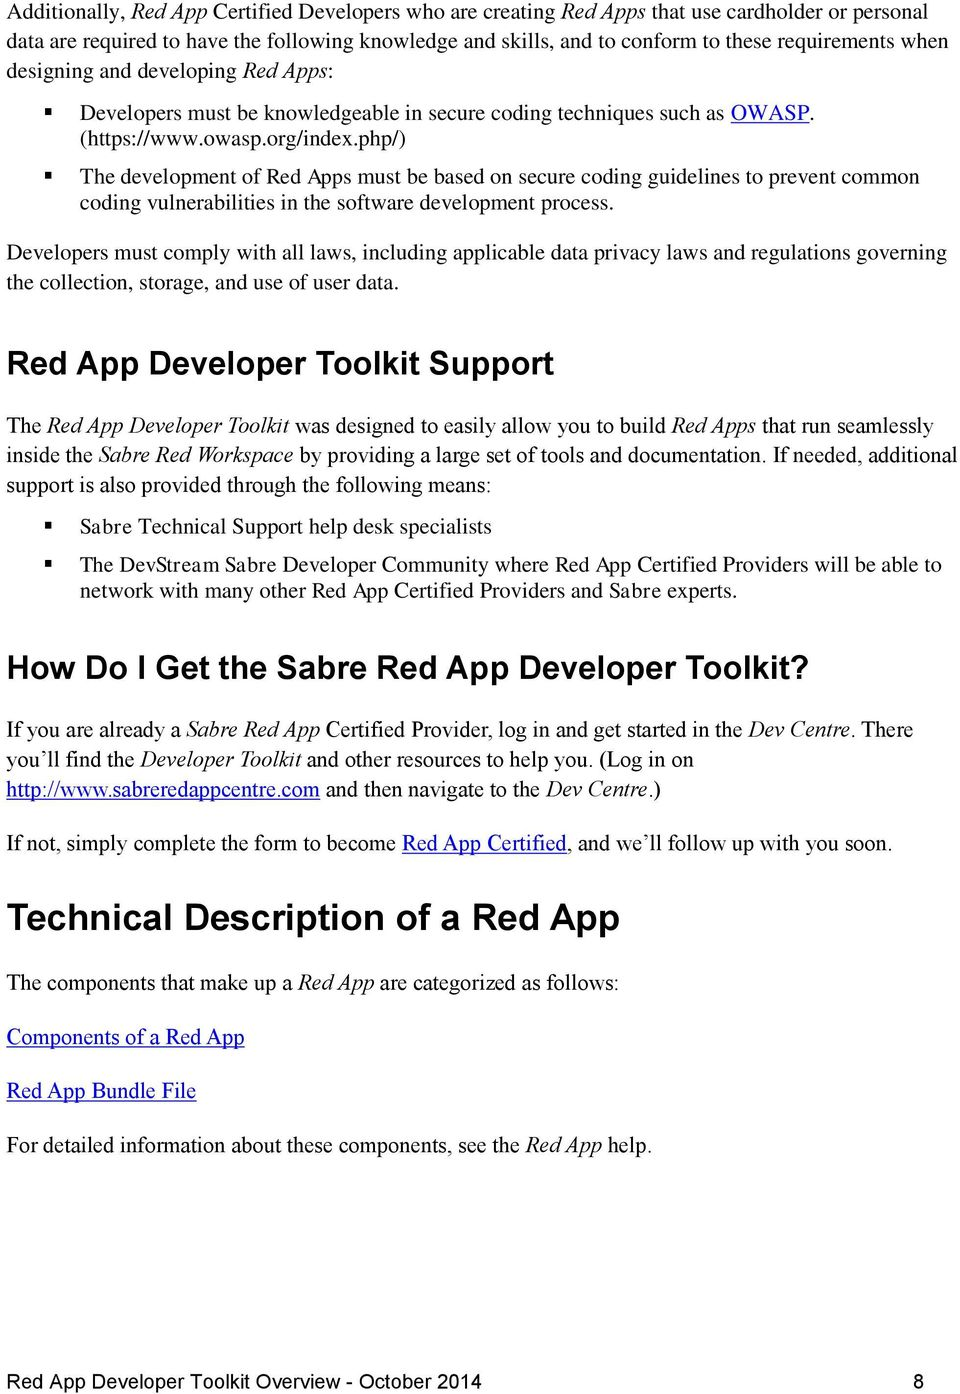 php/) The development of Red Apps must be based on secure coding guidelines to prevent common coding vulnerabilities in the software development process.